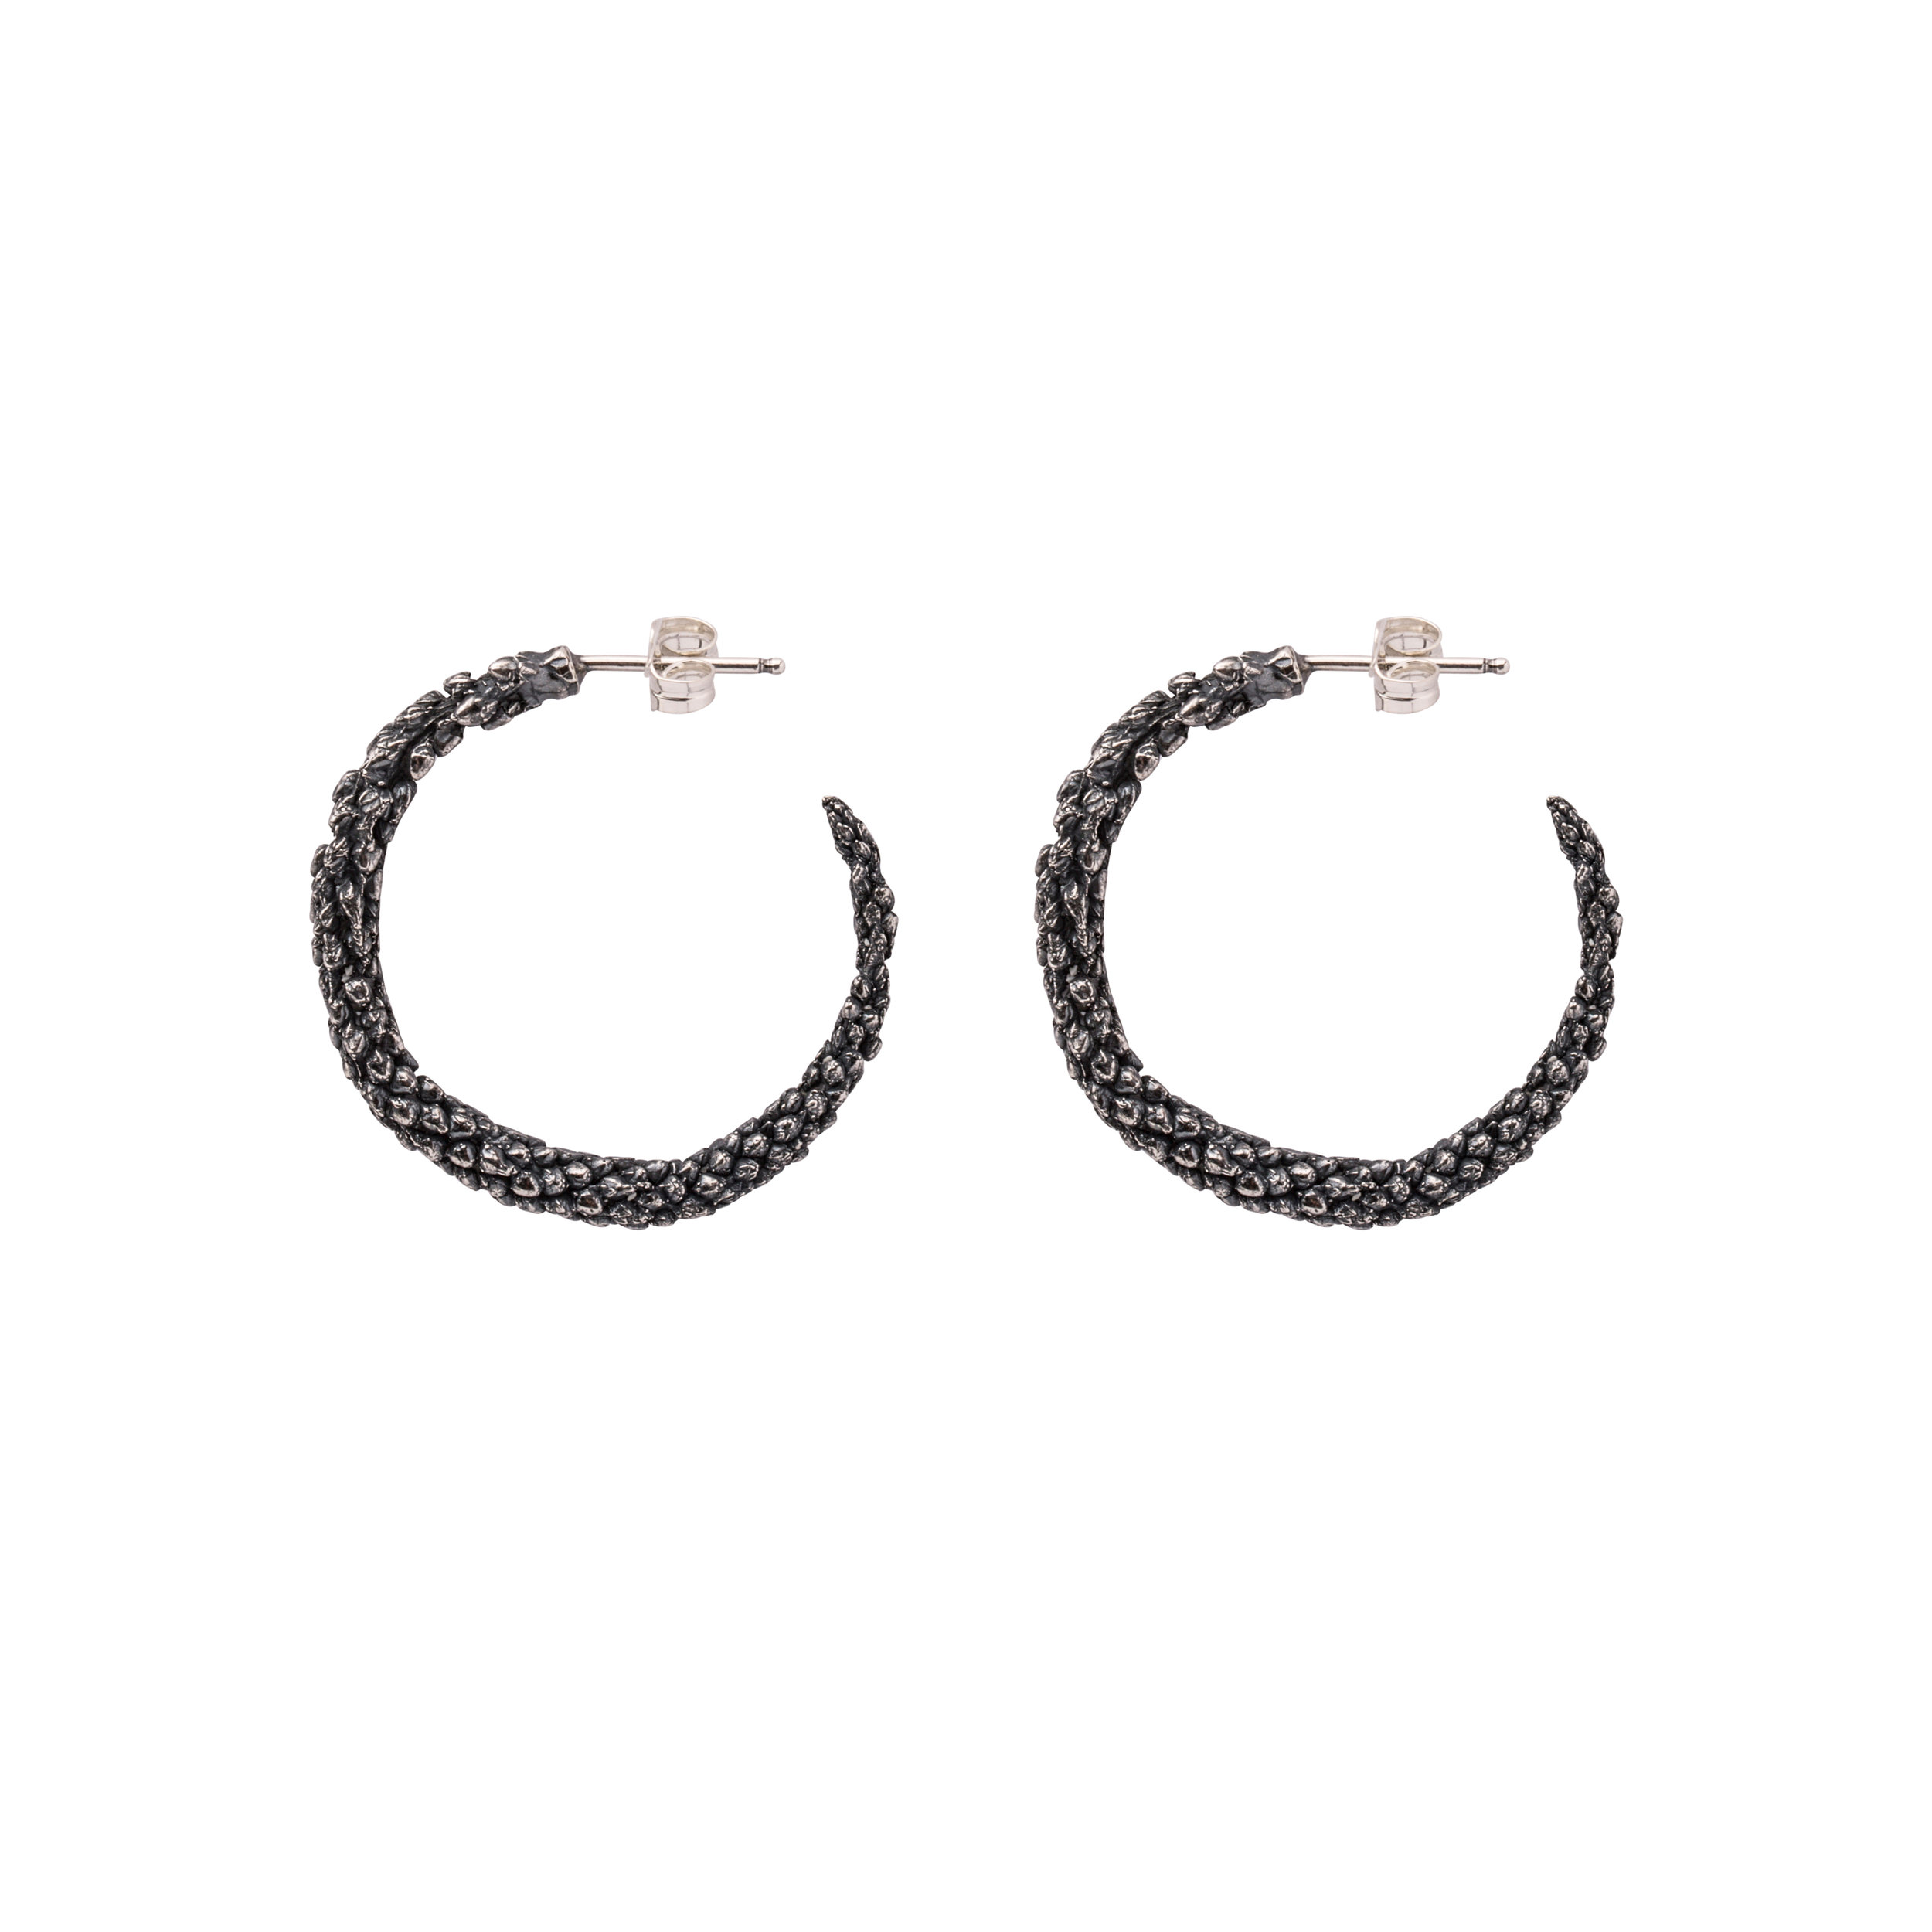 earrings_6267.JPG